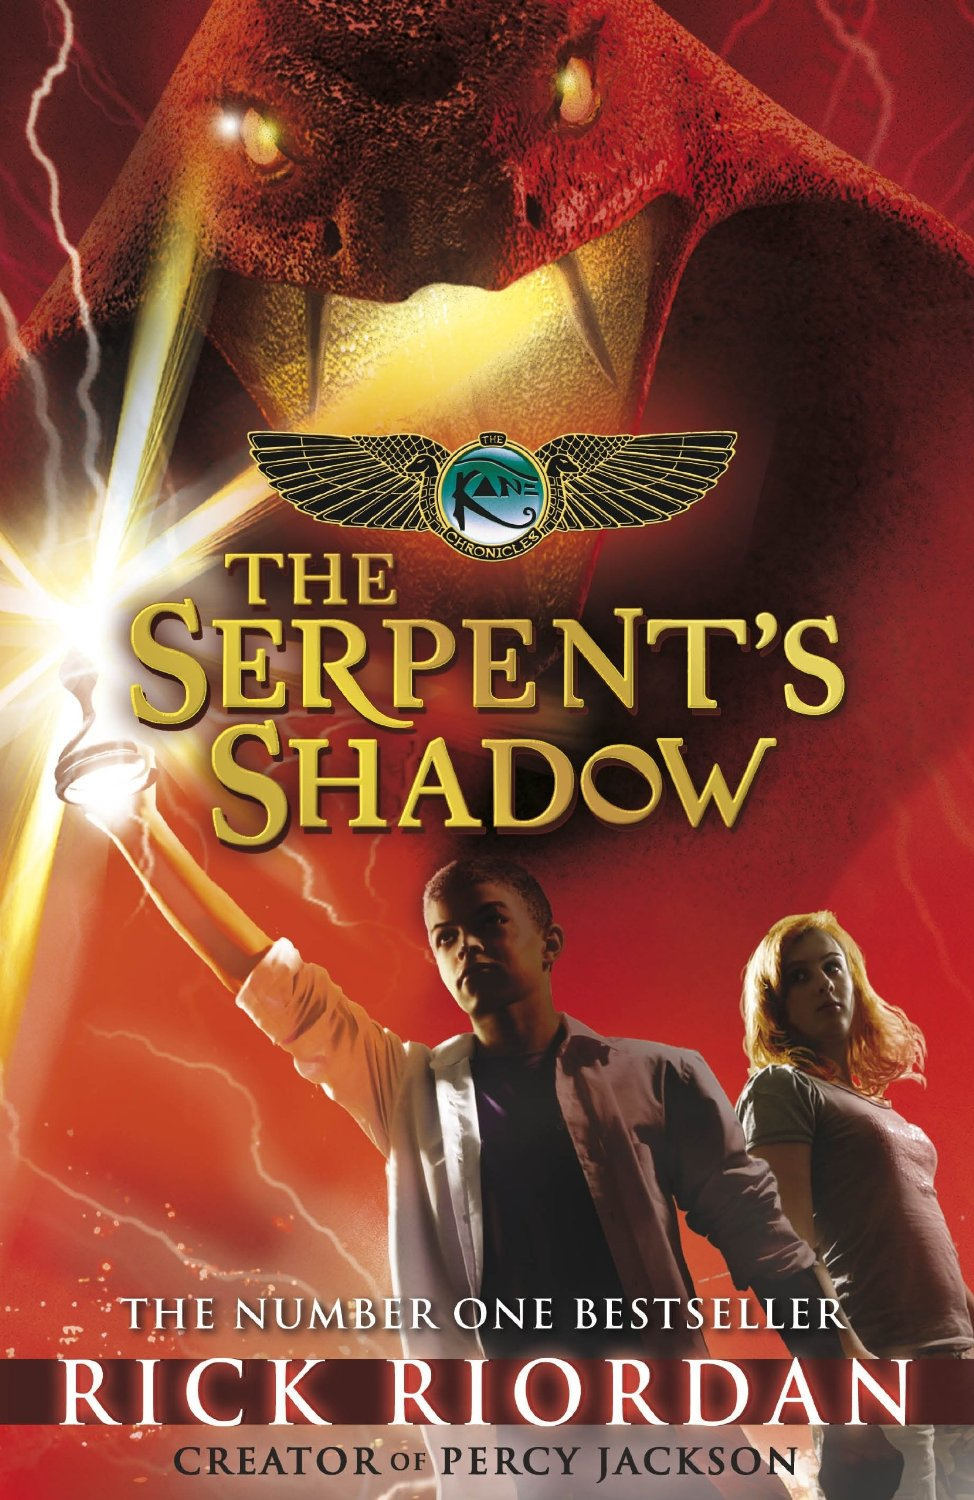 Kane Chronicles: The Serpent's Shadow - 9780141335704